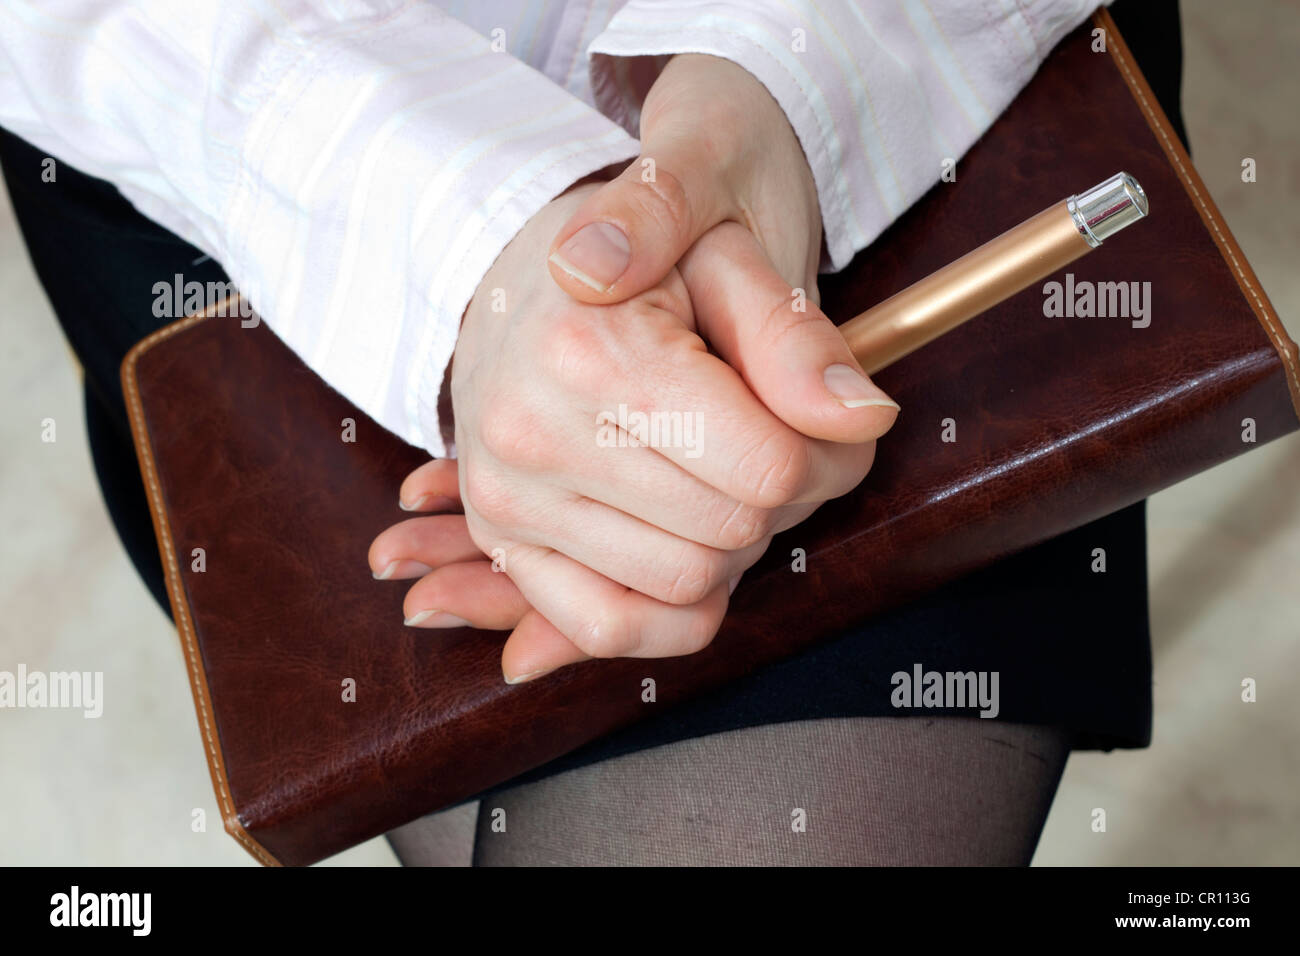 Auditor listener on the meeting hands gesture - Stock Image